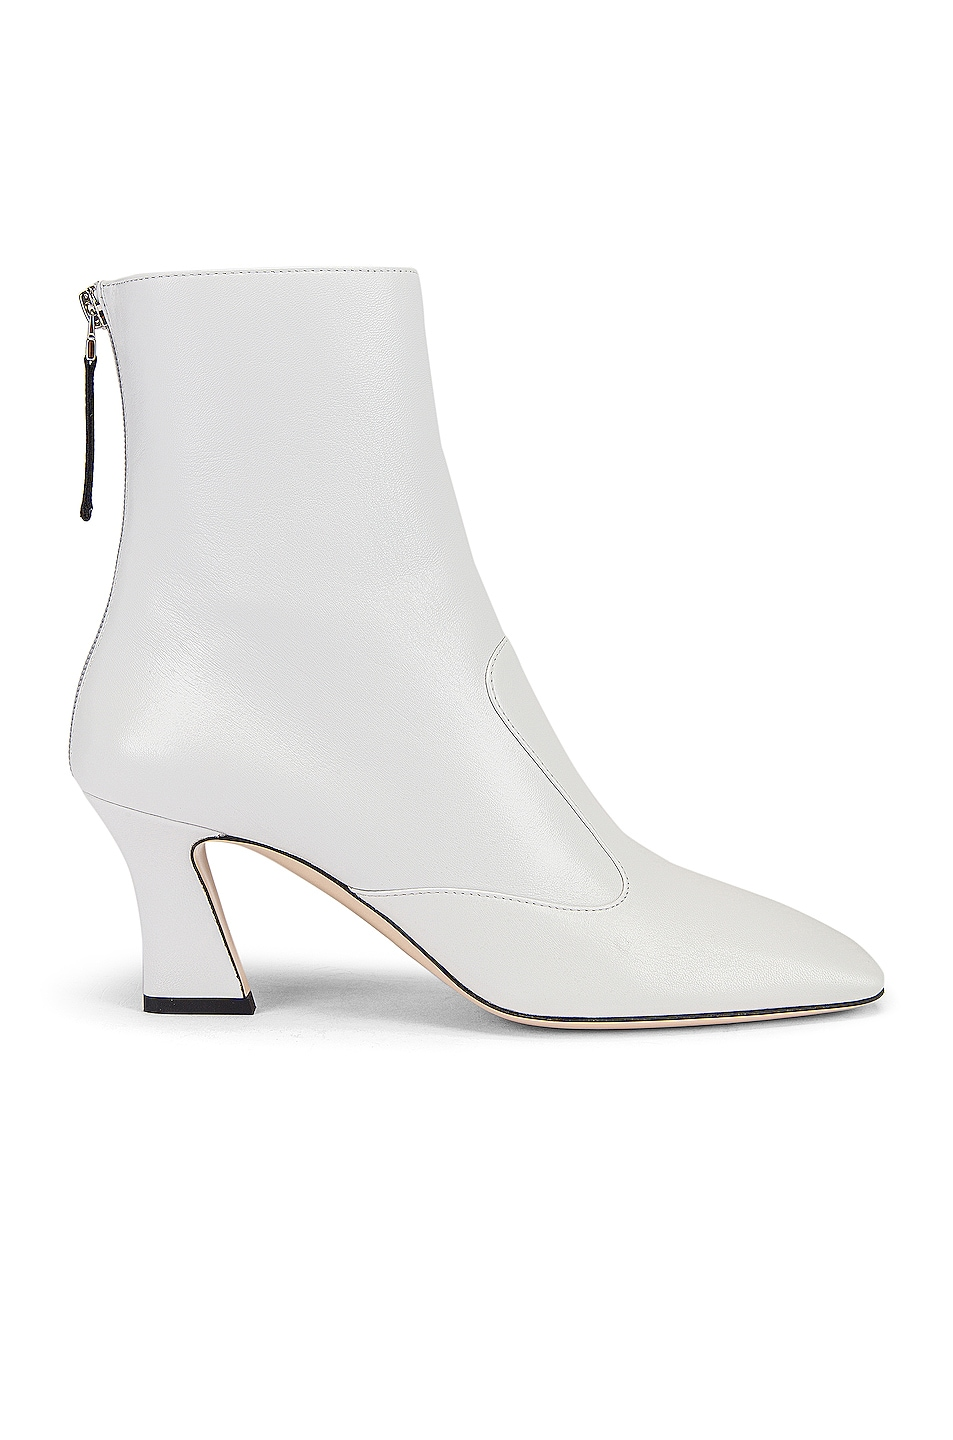 Image 1 of Fendi Leather Ankle Booties in White